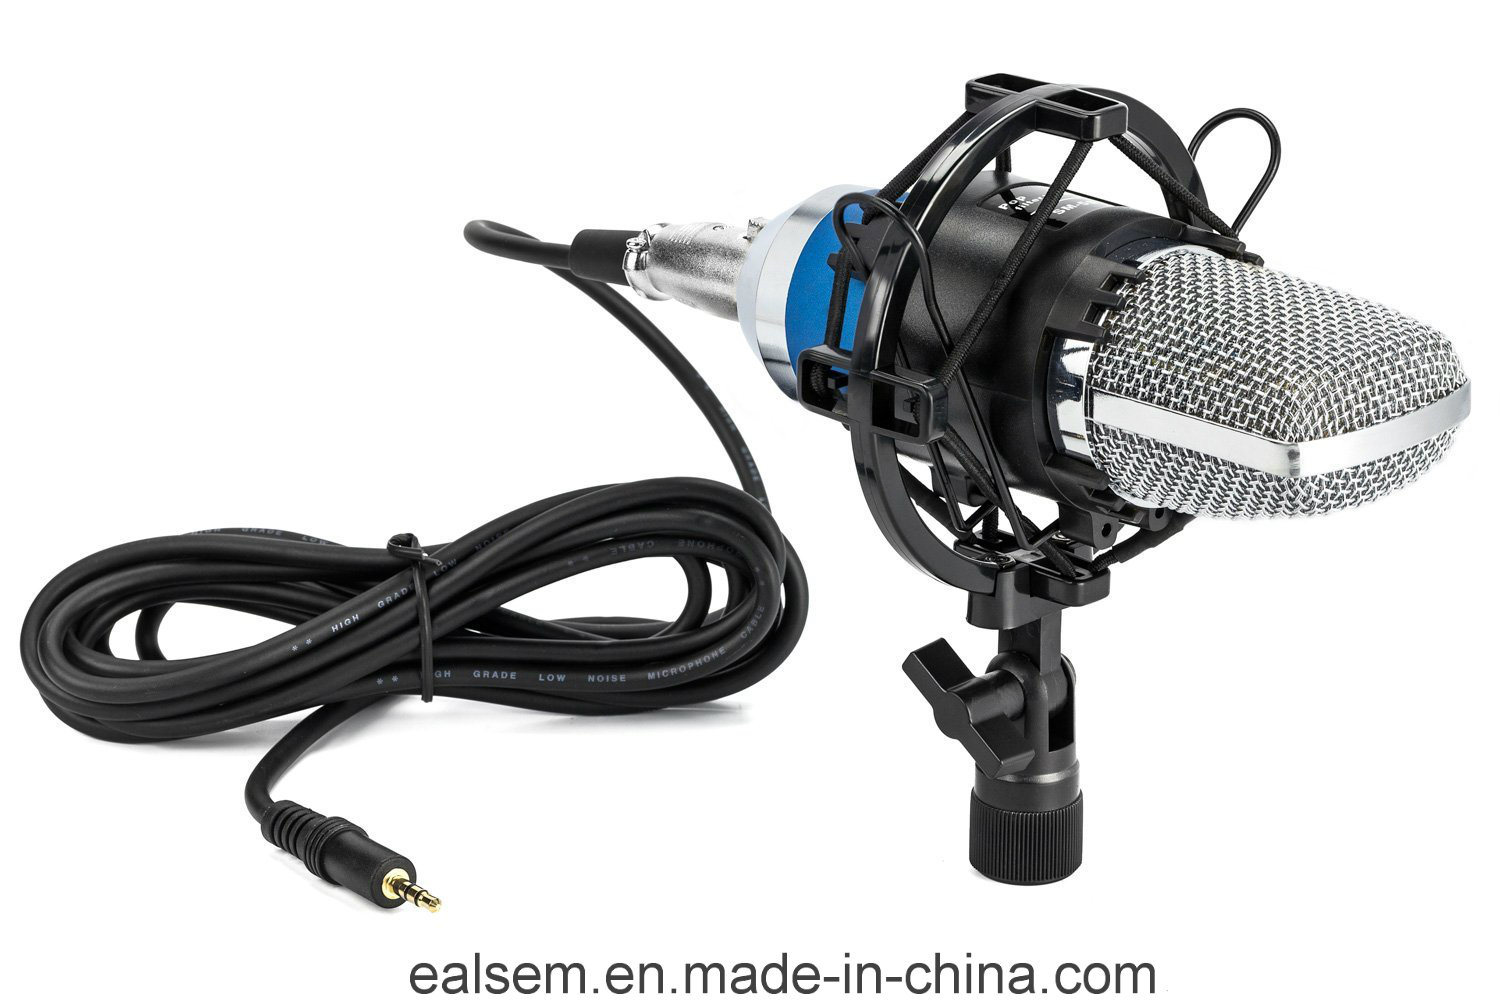 Ealsem Es-6sb Professional Multi-Pattern Small Diaphragm High-Performance Condenser Project Studio Microphone